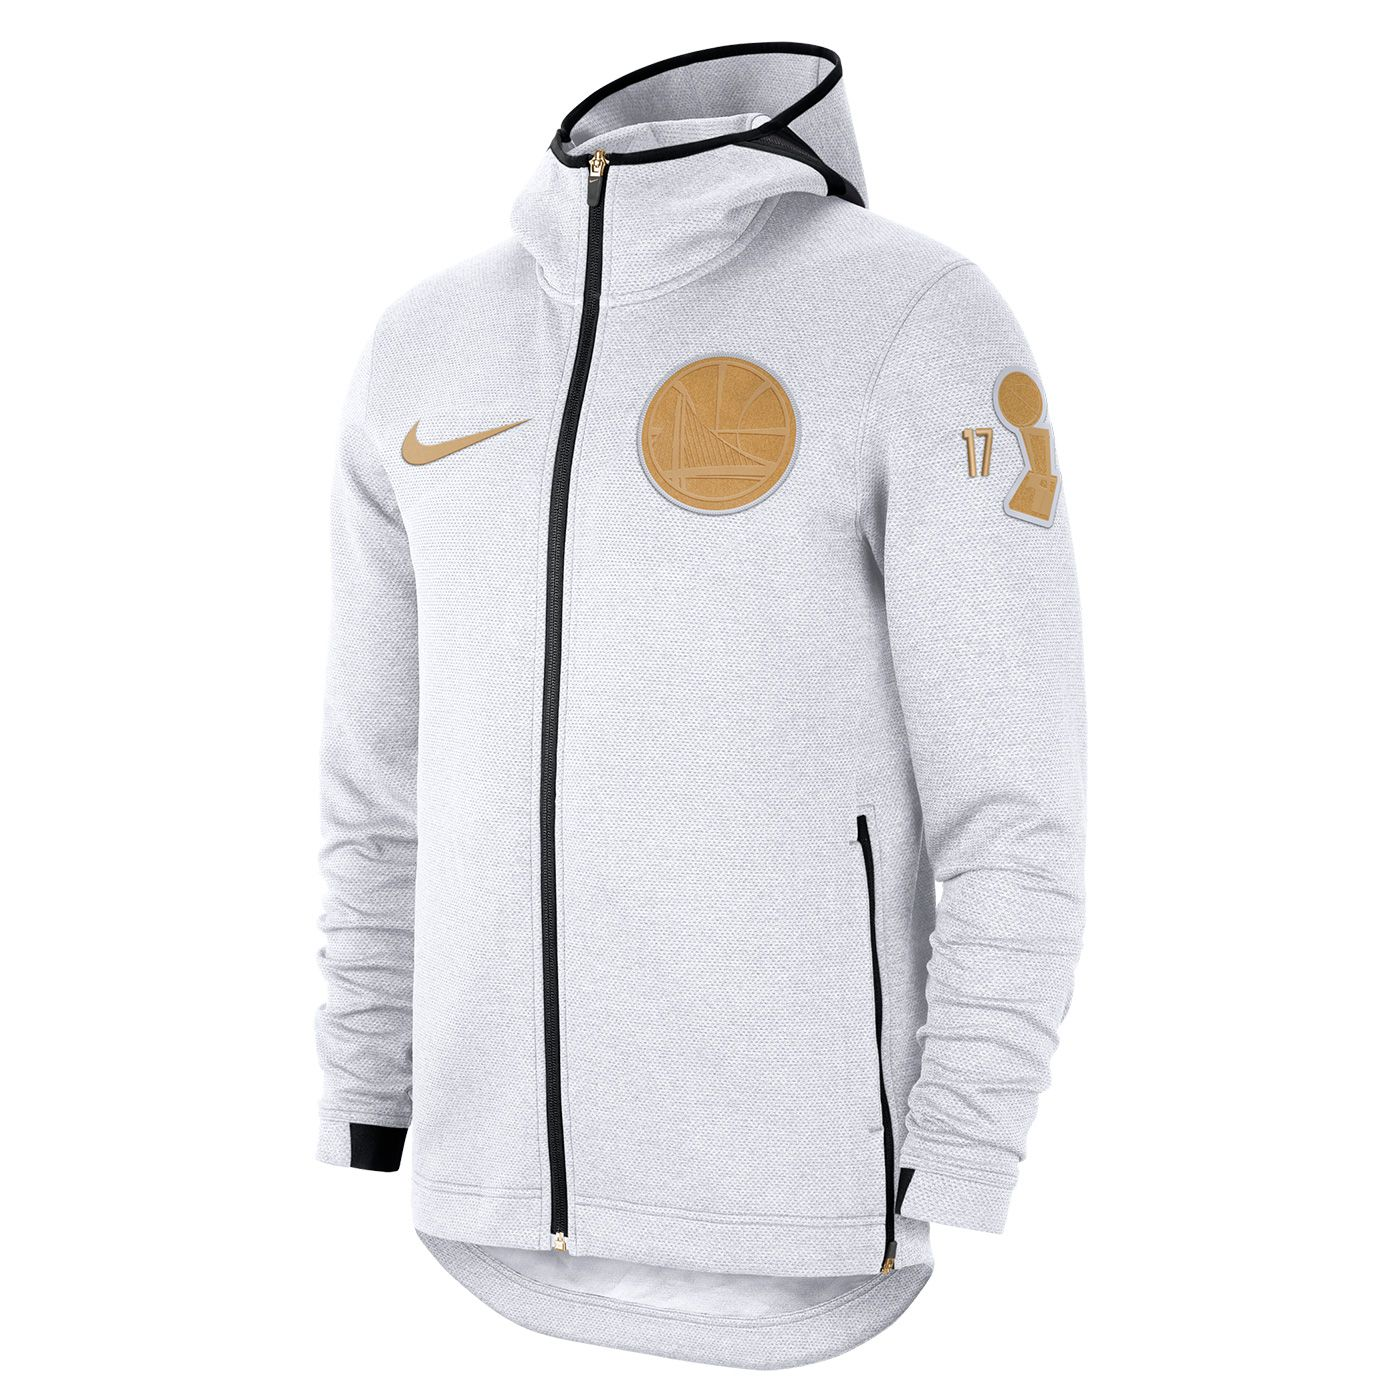 bad457e624604 Golden State Warriors Nike Men s Therma Flex Back to Back Champions Trophy  Ring Banner Showtime Full Zip Hoodie - White - Golden State Warriors -  Official ...